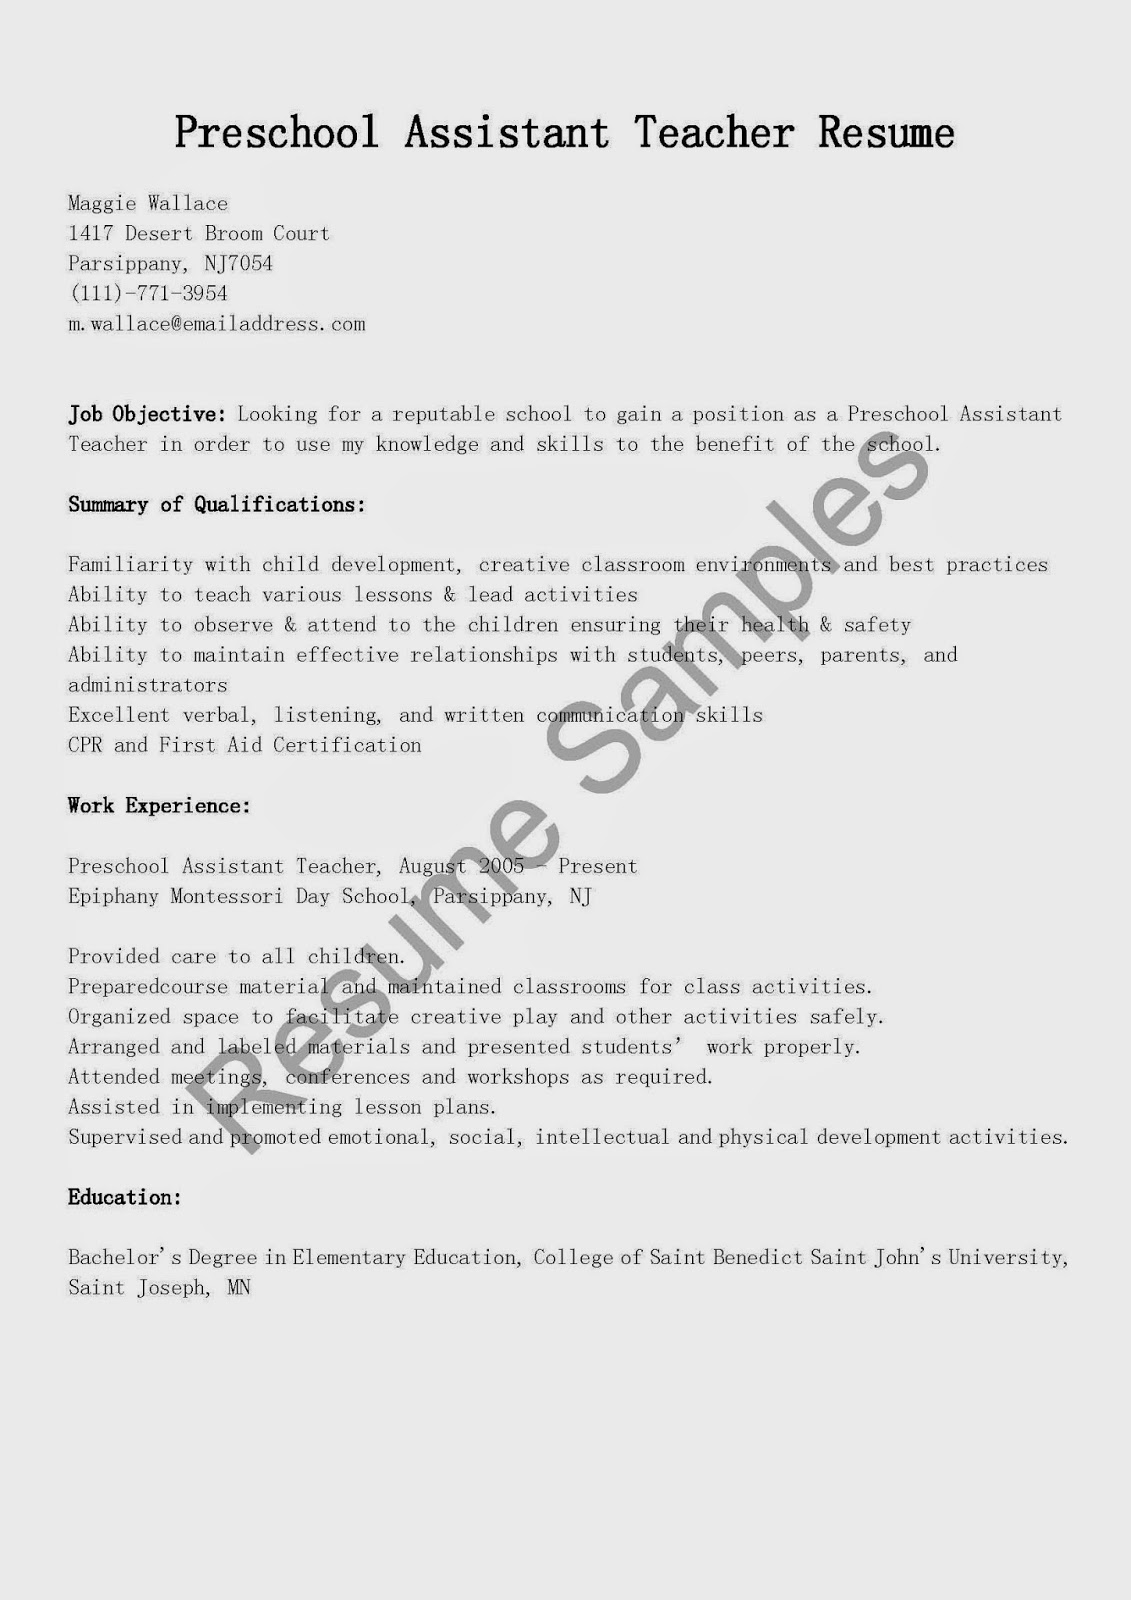 resume for child care resume format pdf resume for child care child care provider resumechild care resume child care resume skills professional child